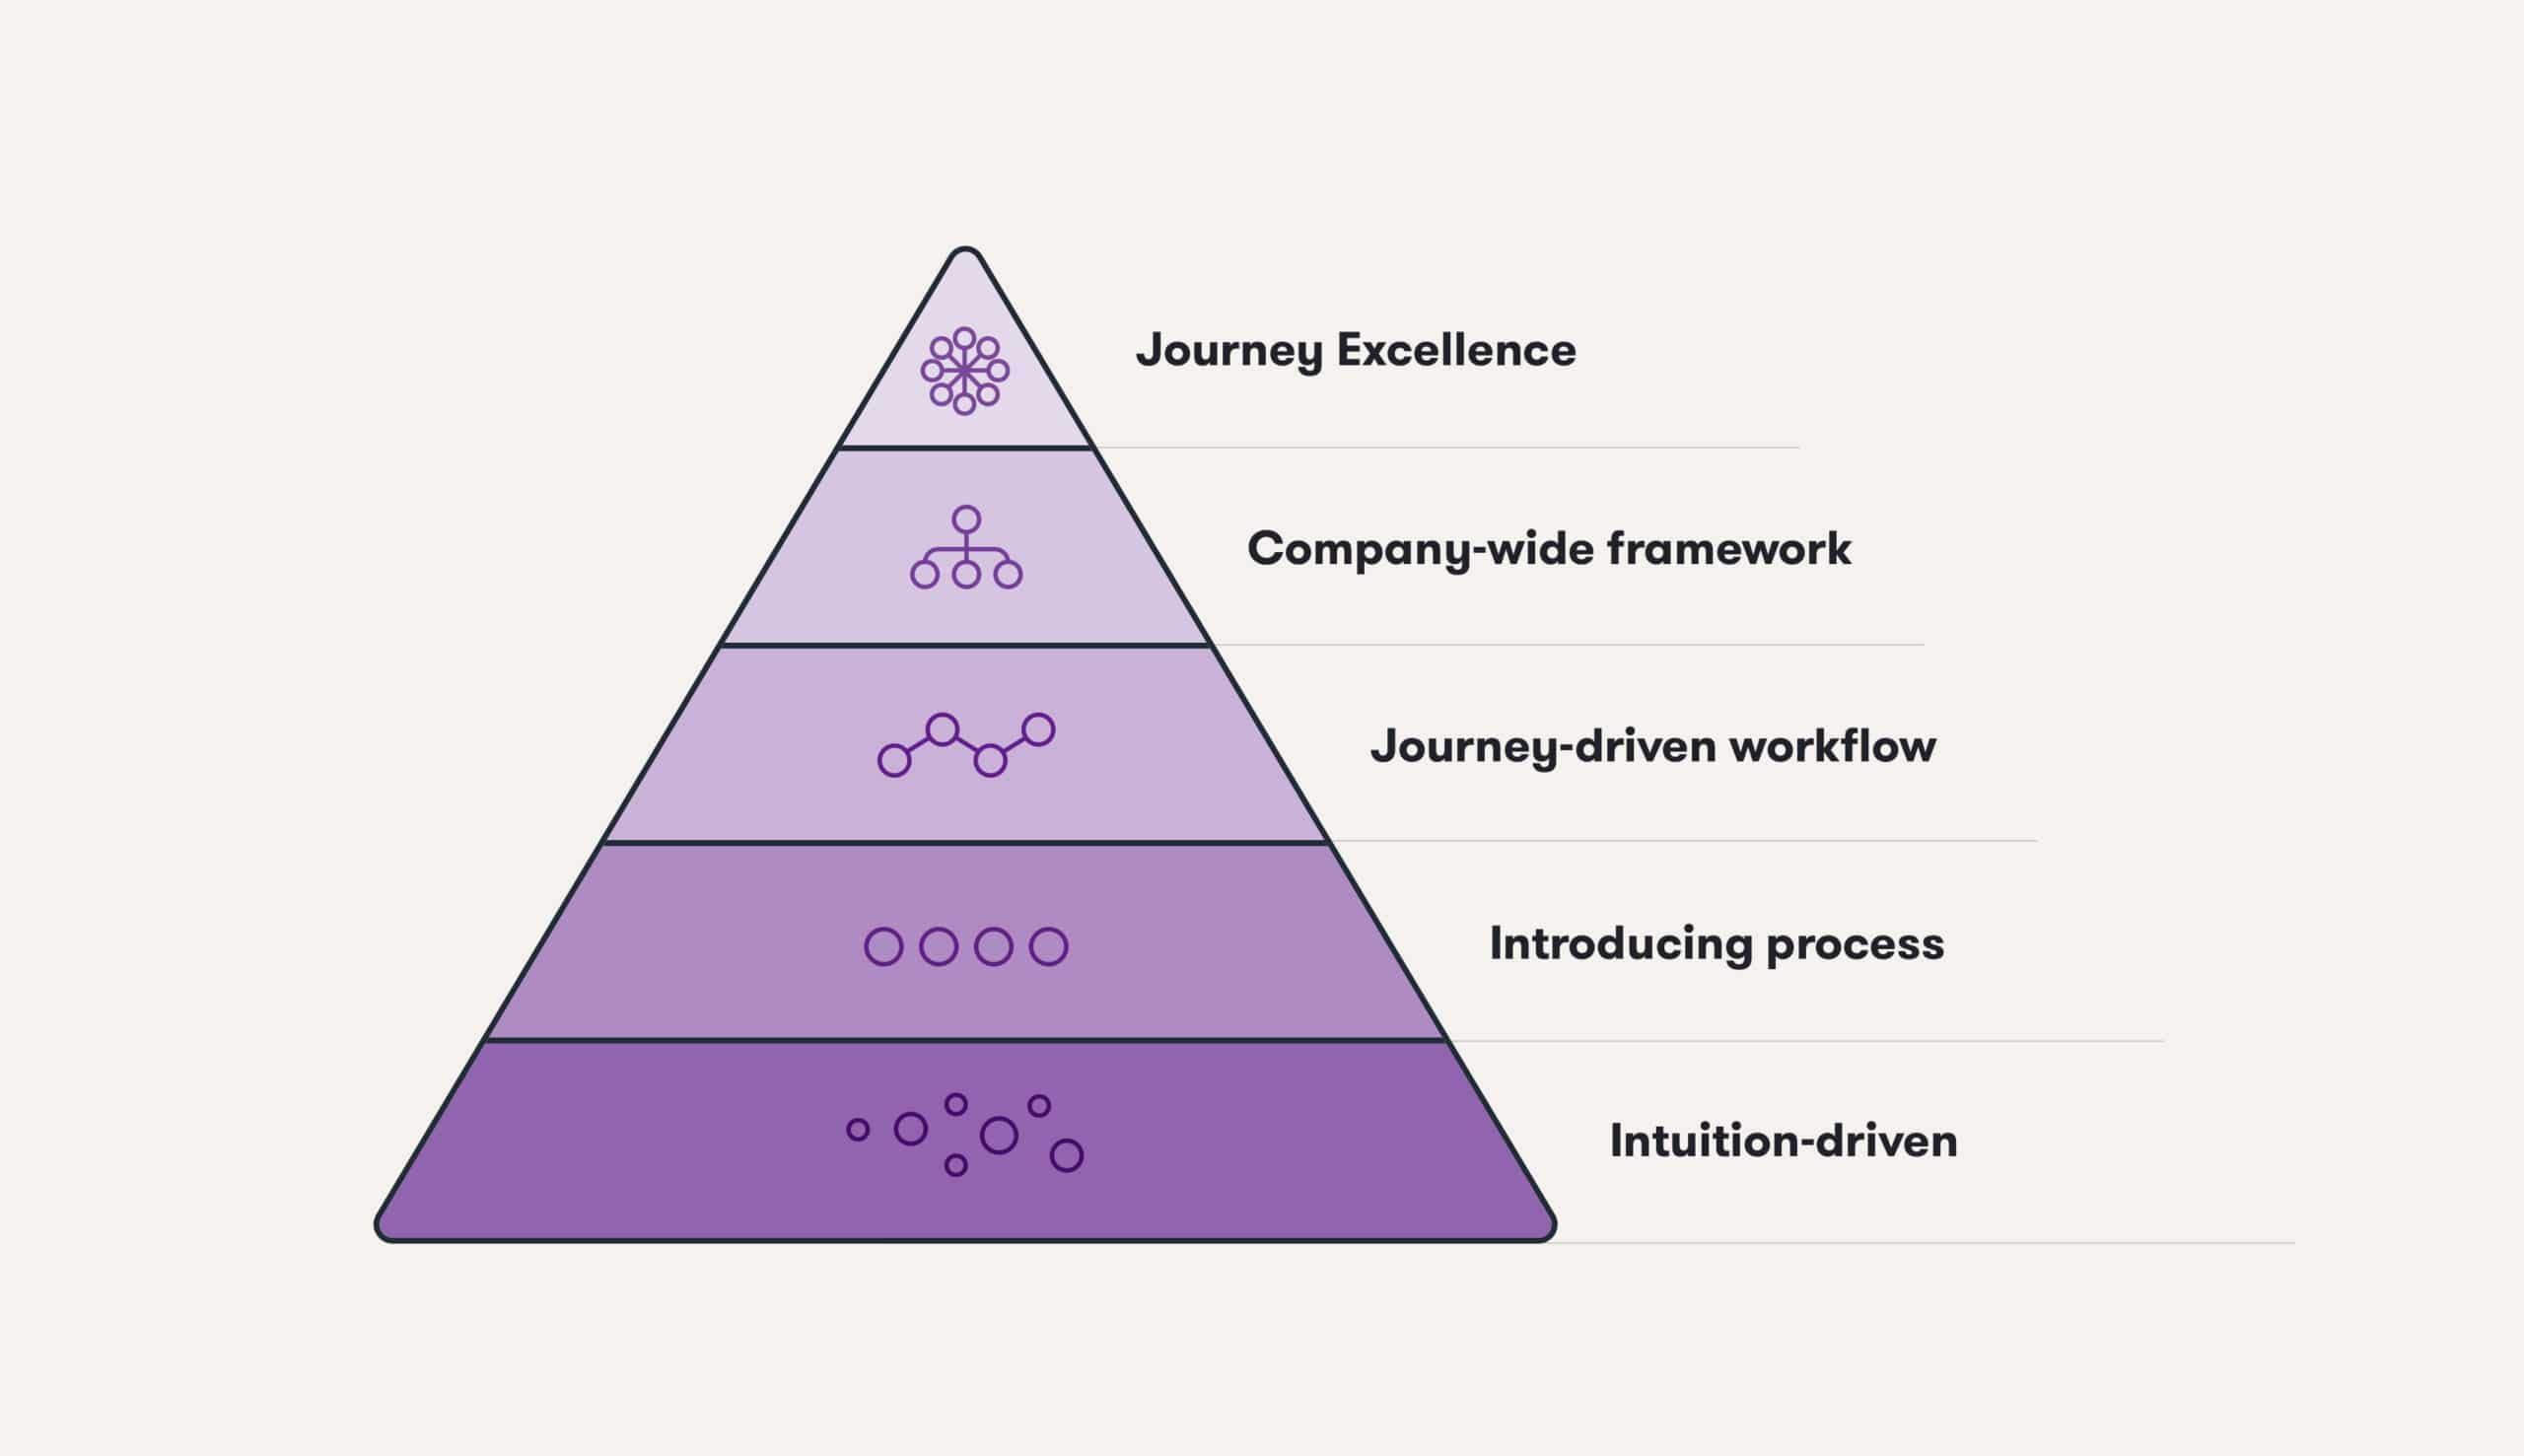 Levels of Customer Journey Excellence